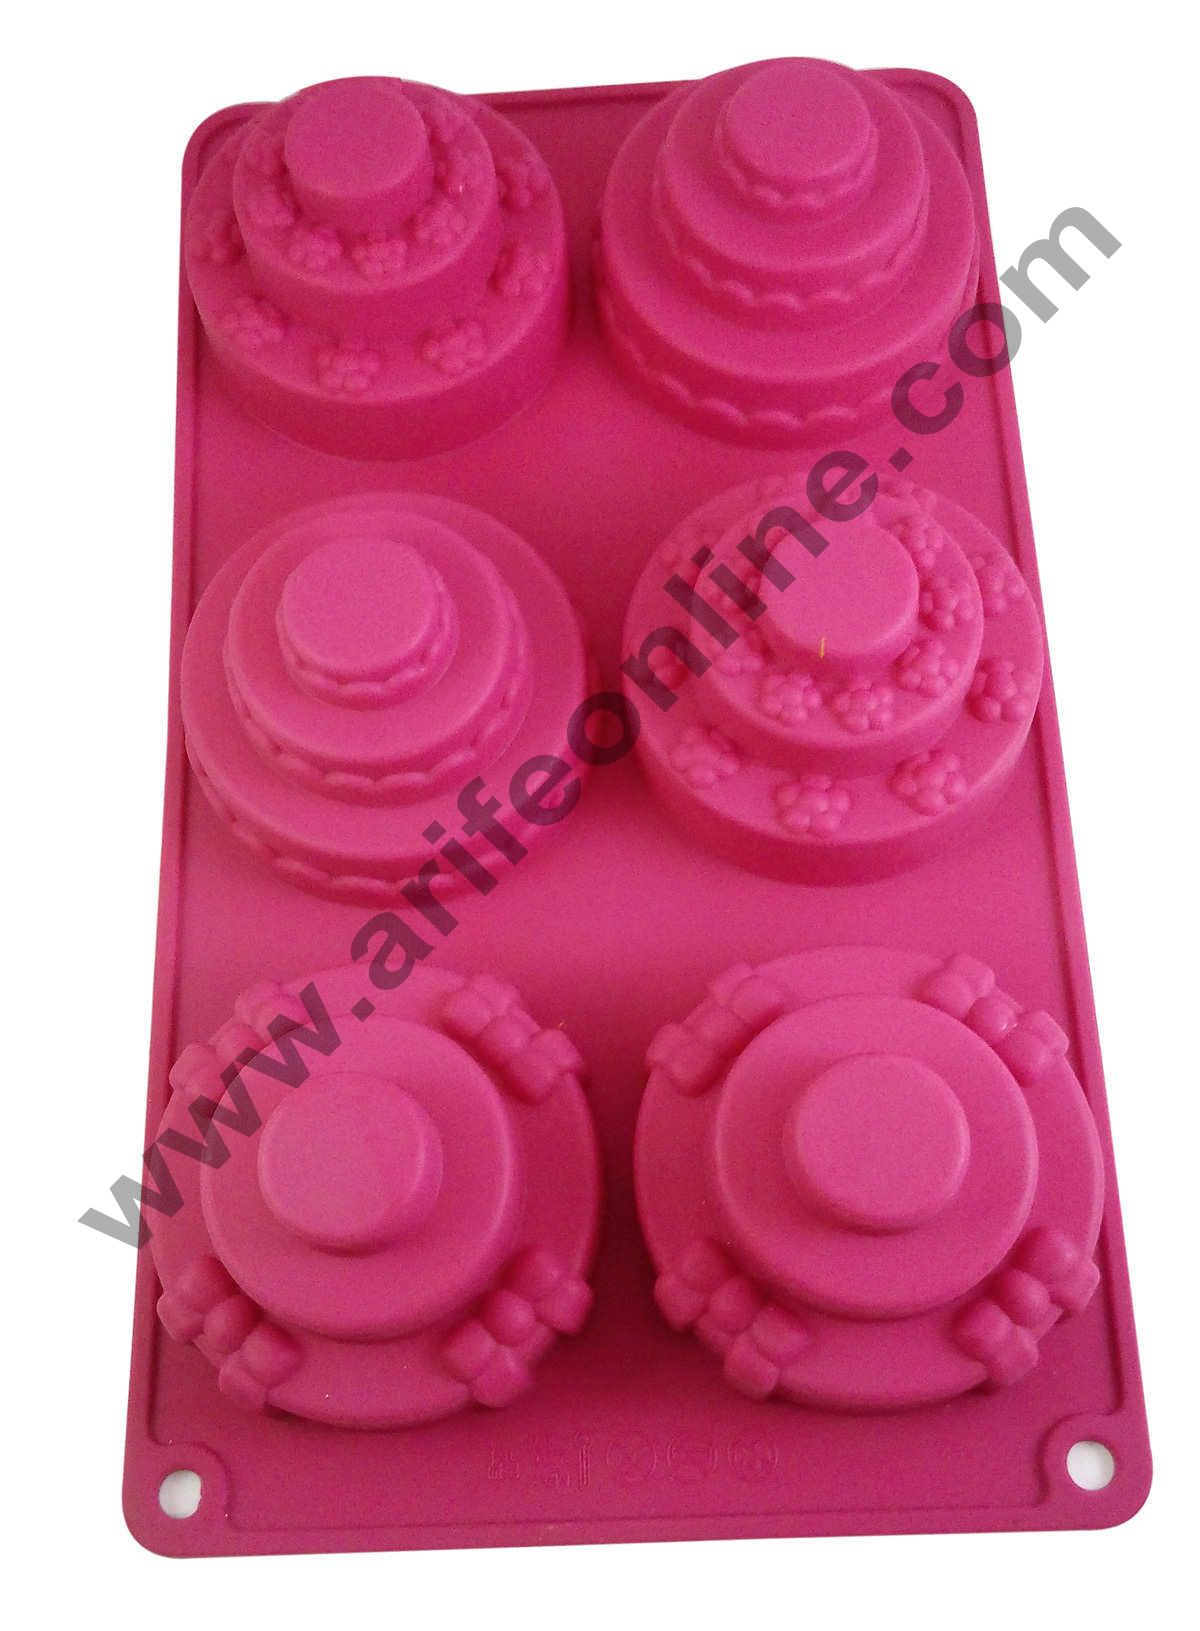 Cake Decor Silicon 6 in 1 Three Tier Muffin Cupcake Mould